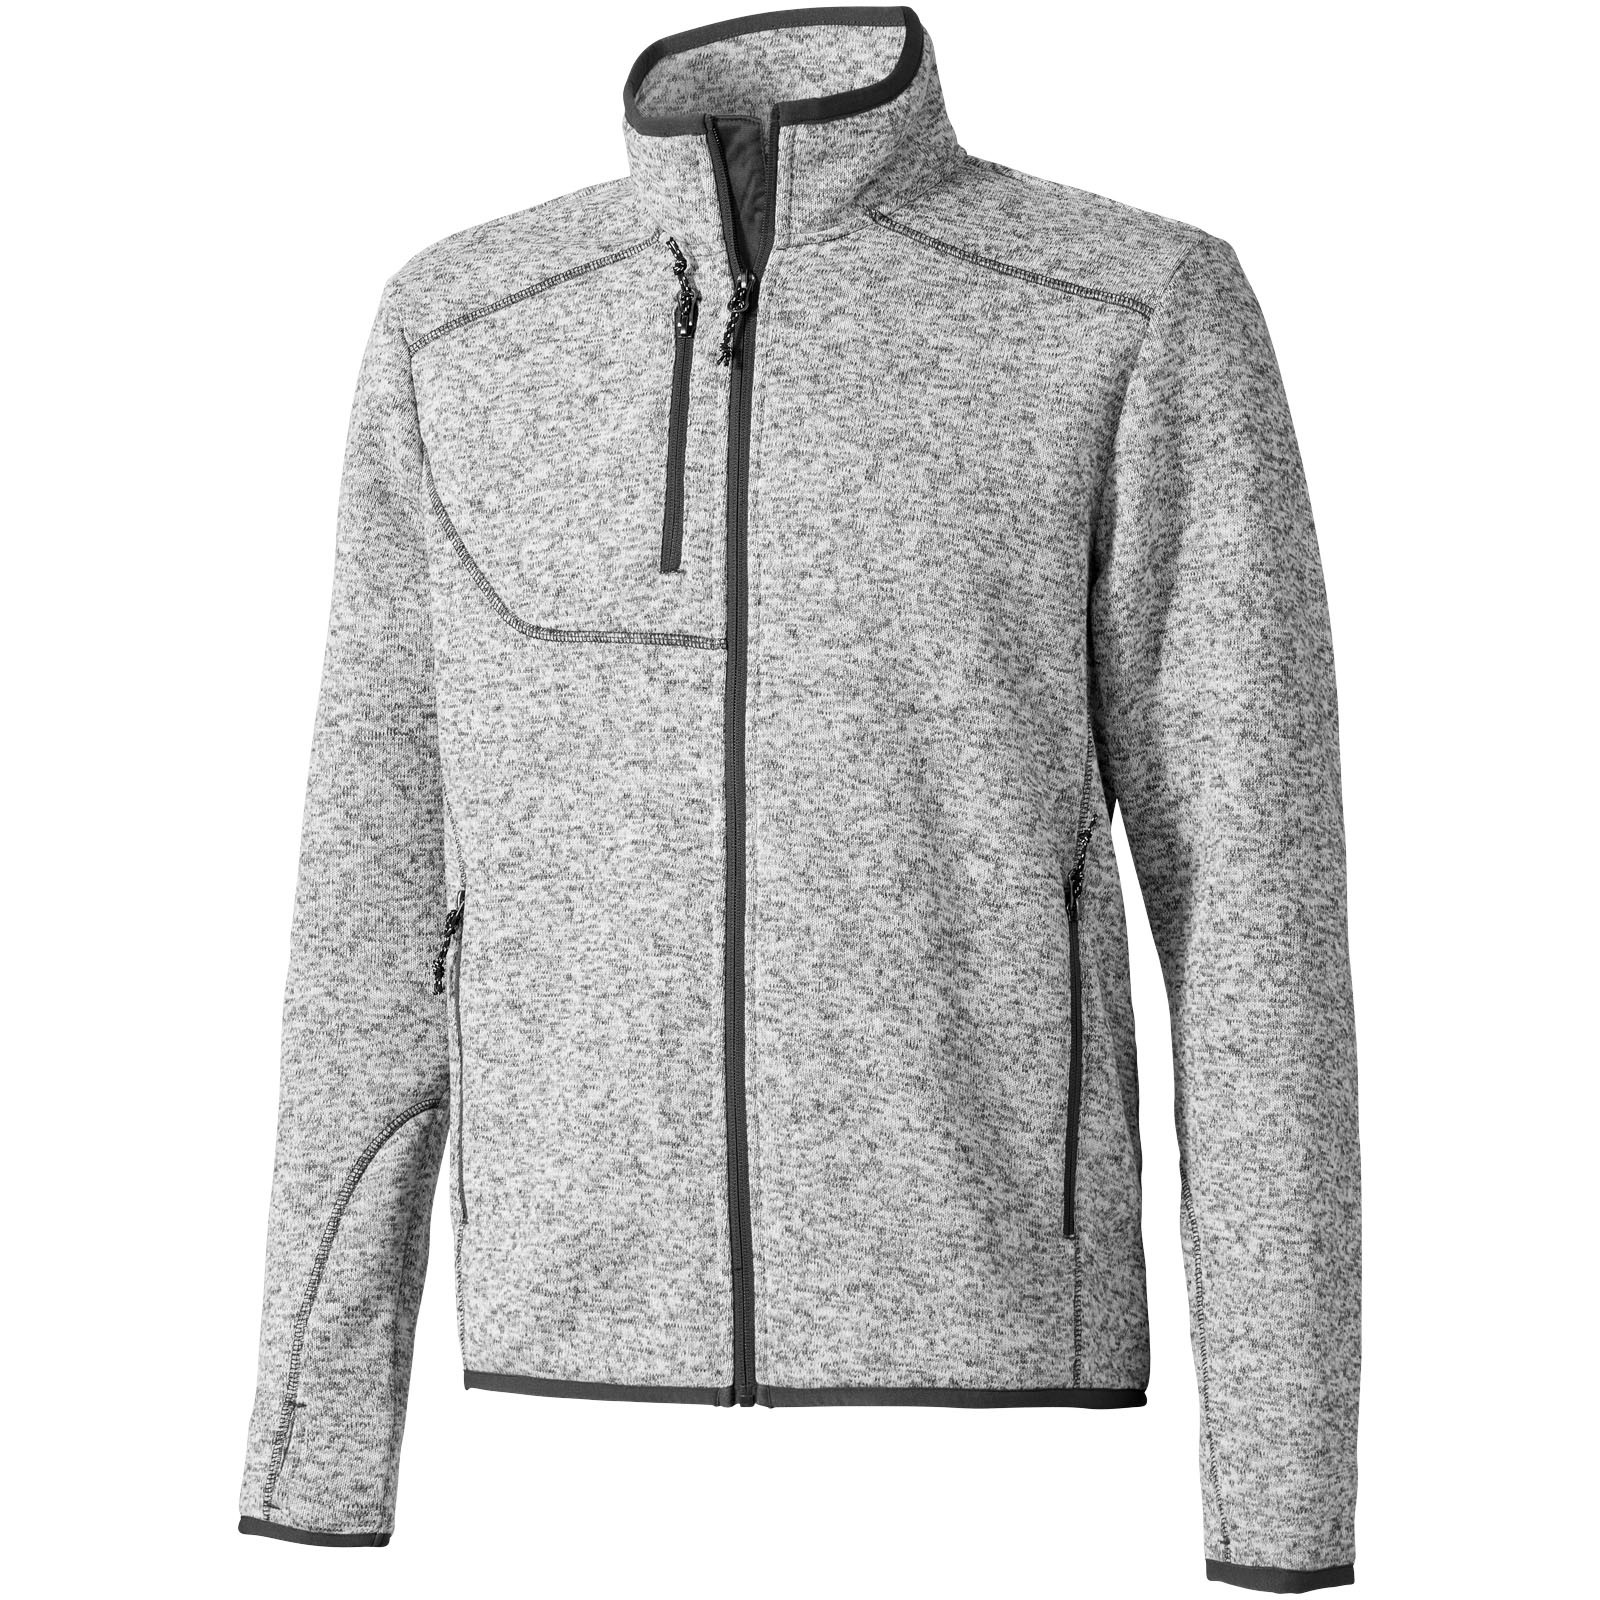 Tremblant knit jacket - Heather Grey / L